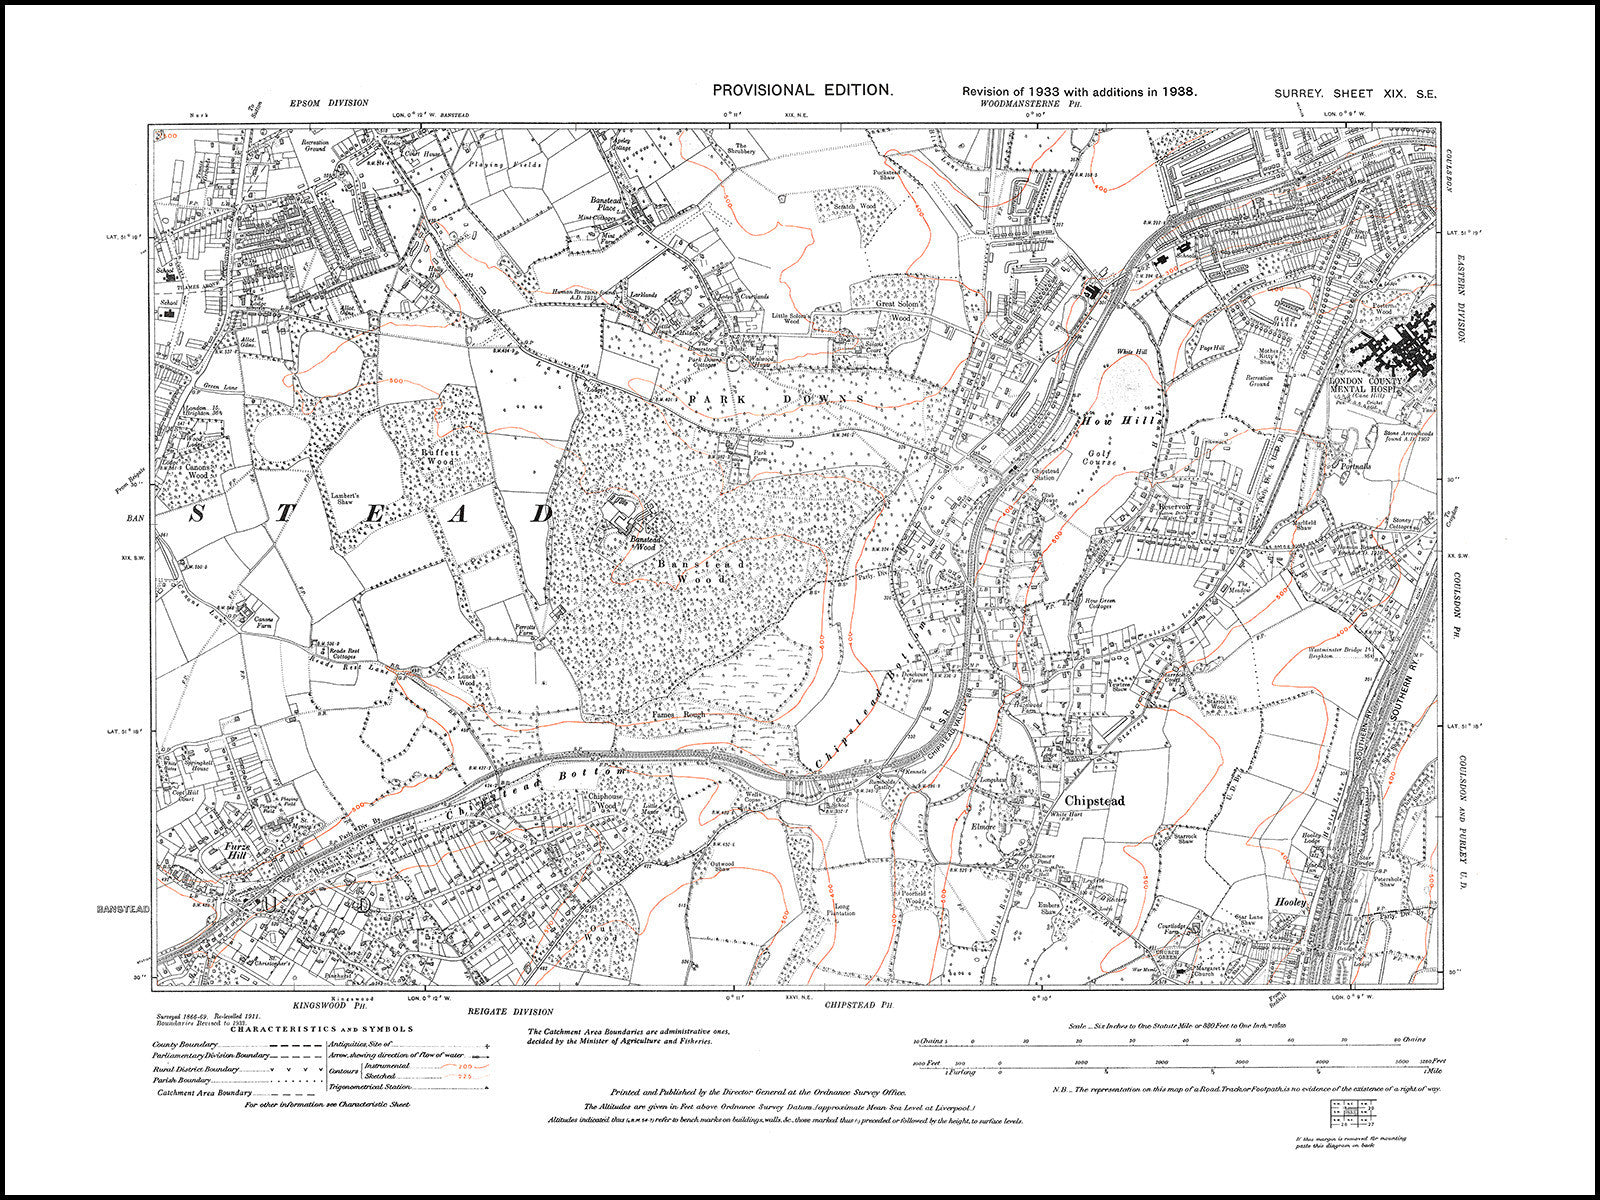 Map Se London.Banstead South Park Downs Chipstead How Hills London County Hospital Surrey In 1938 19 Se